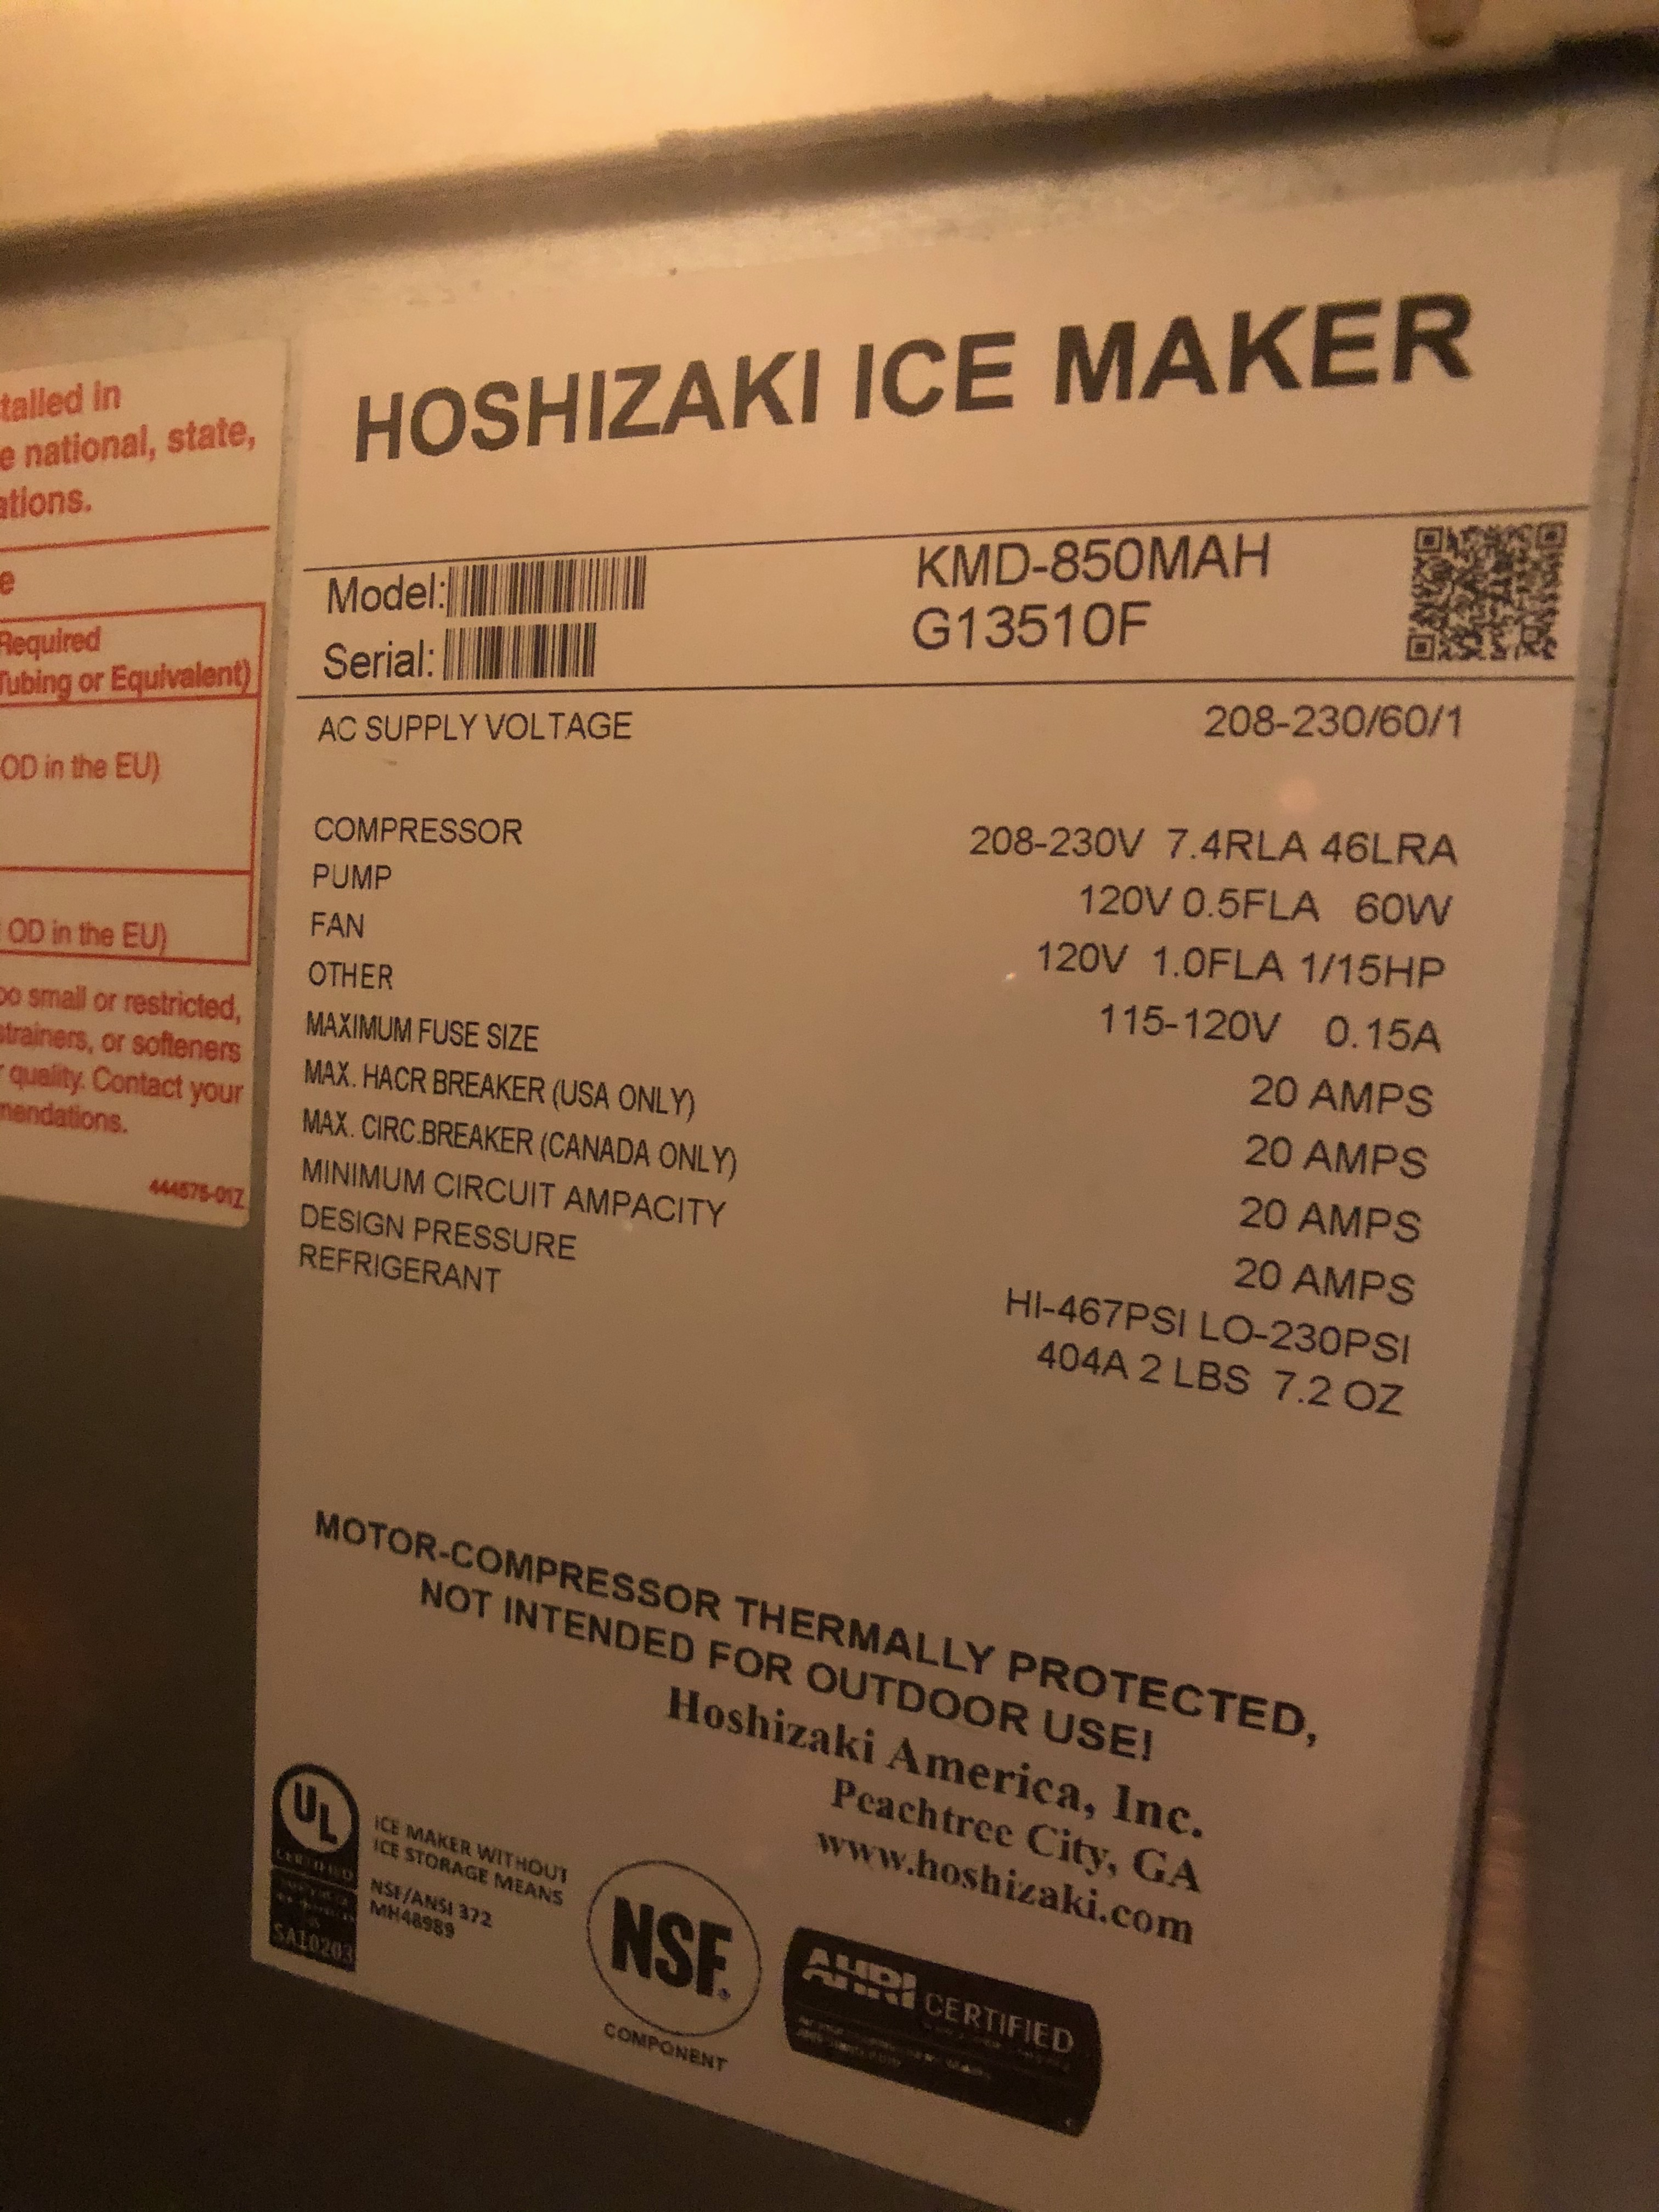 Manitowoc Beverage Systems 10-Valve Soft Drink Dispenser, Model SV250, S/N 610202454, with Hoshizaki - Image 8 of 10